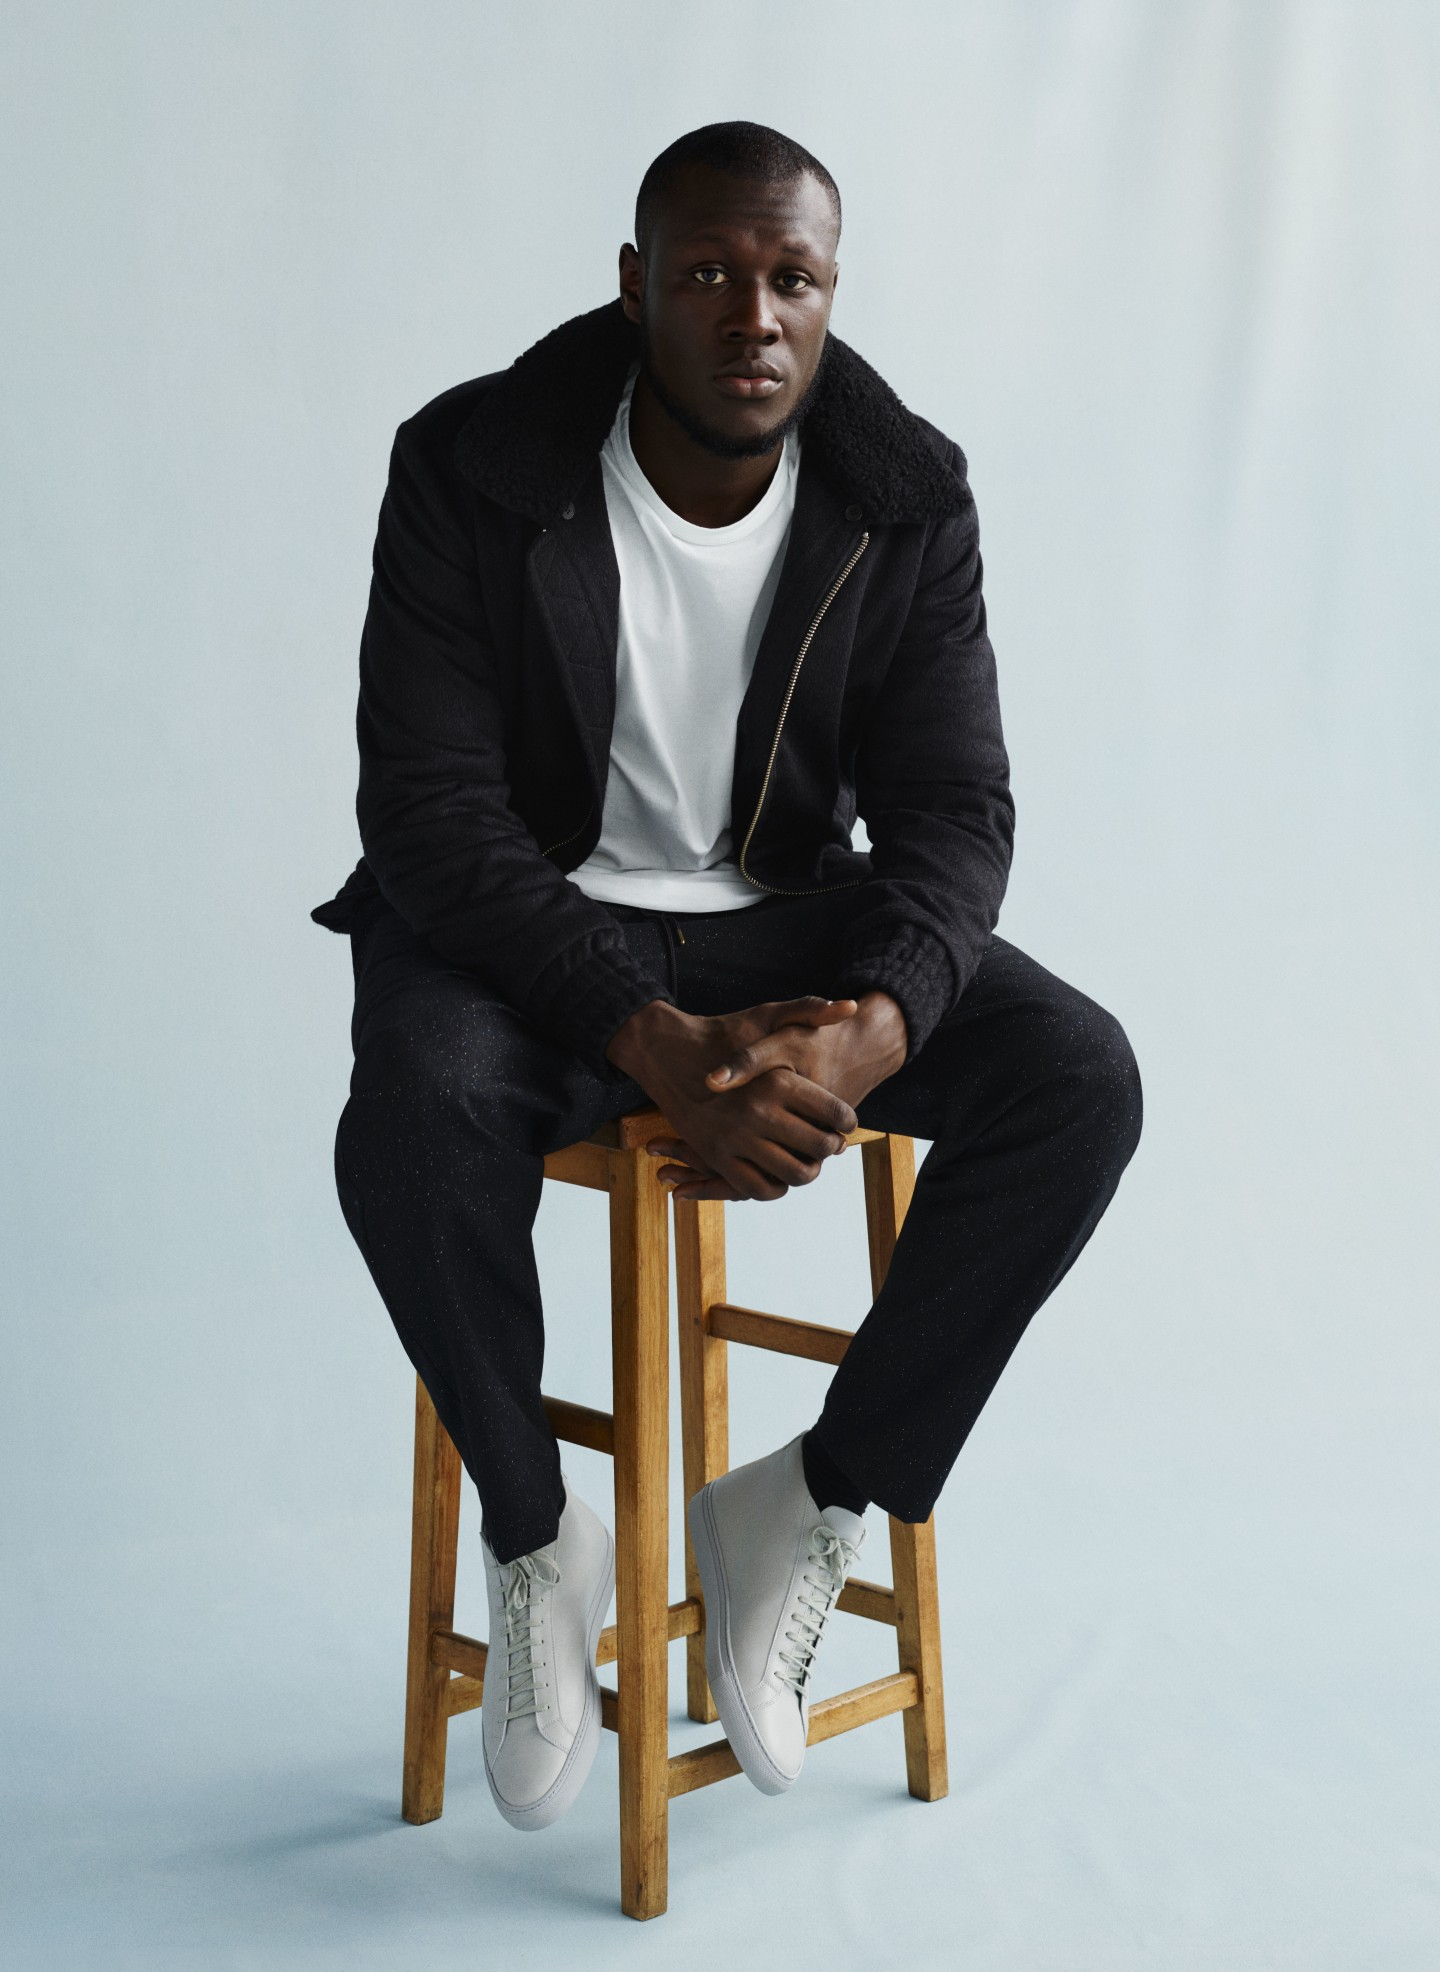 Stormzy Tells The Story Behind Every Song On His Debut Album